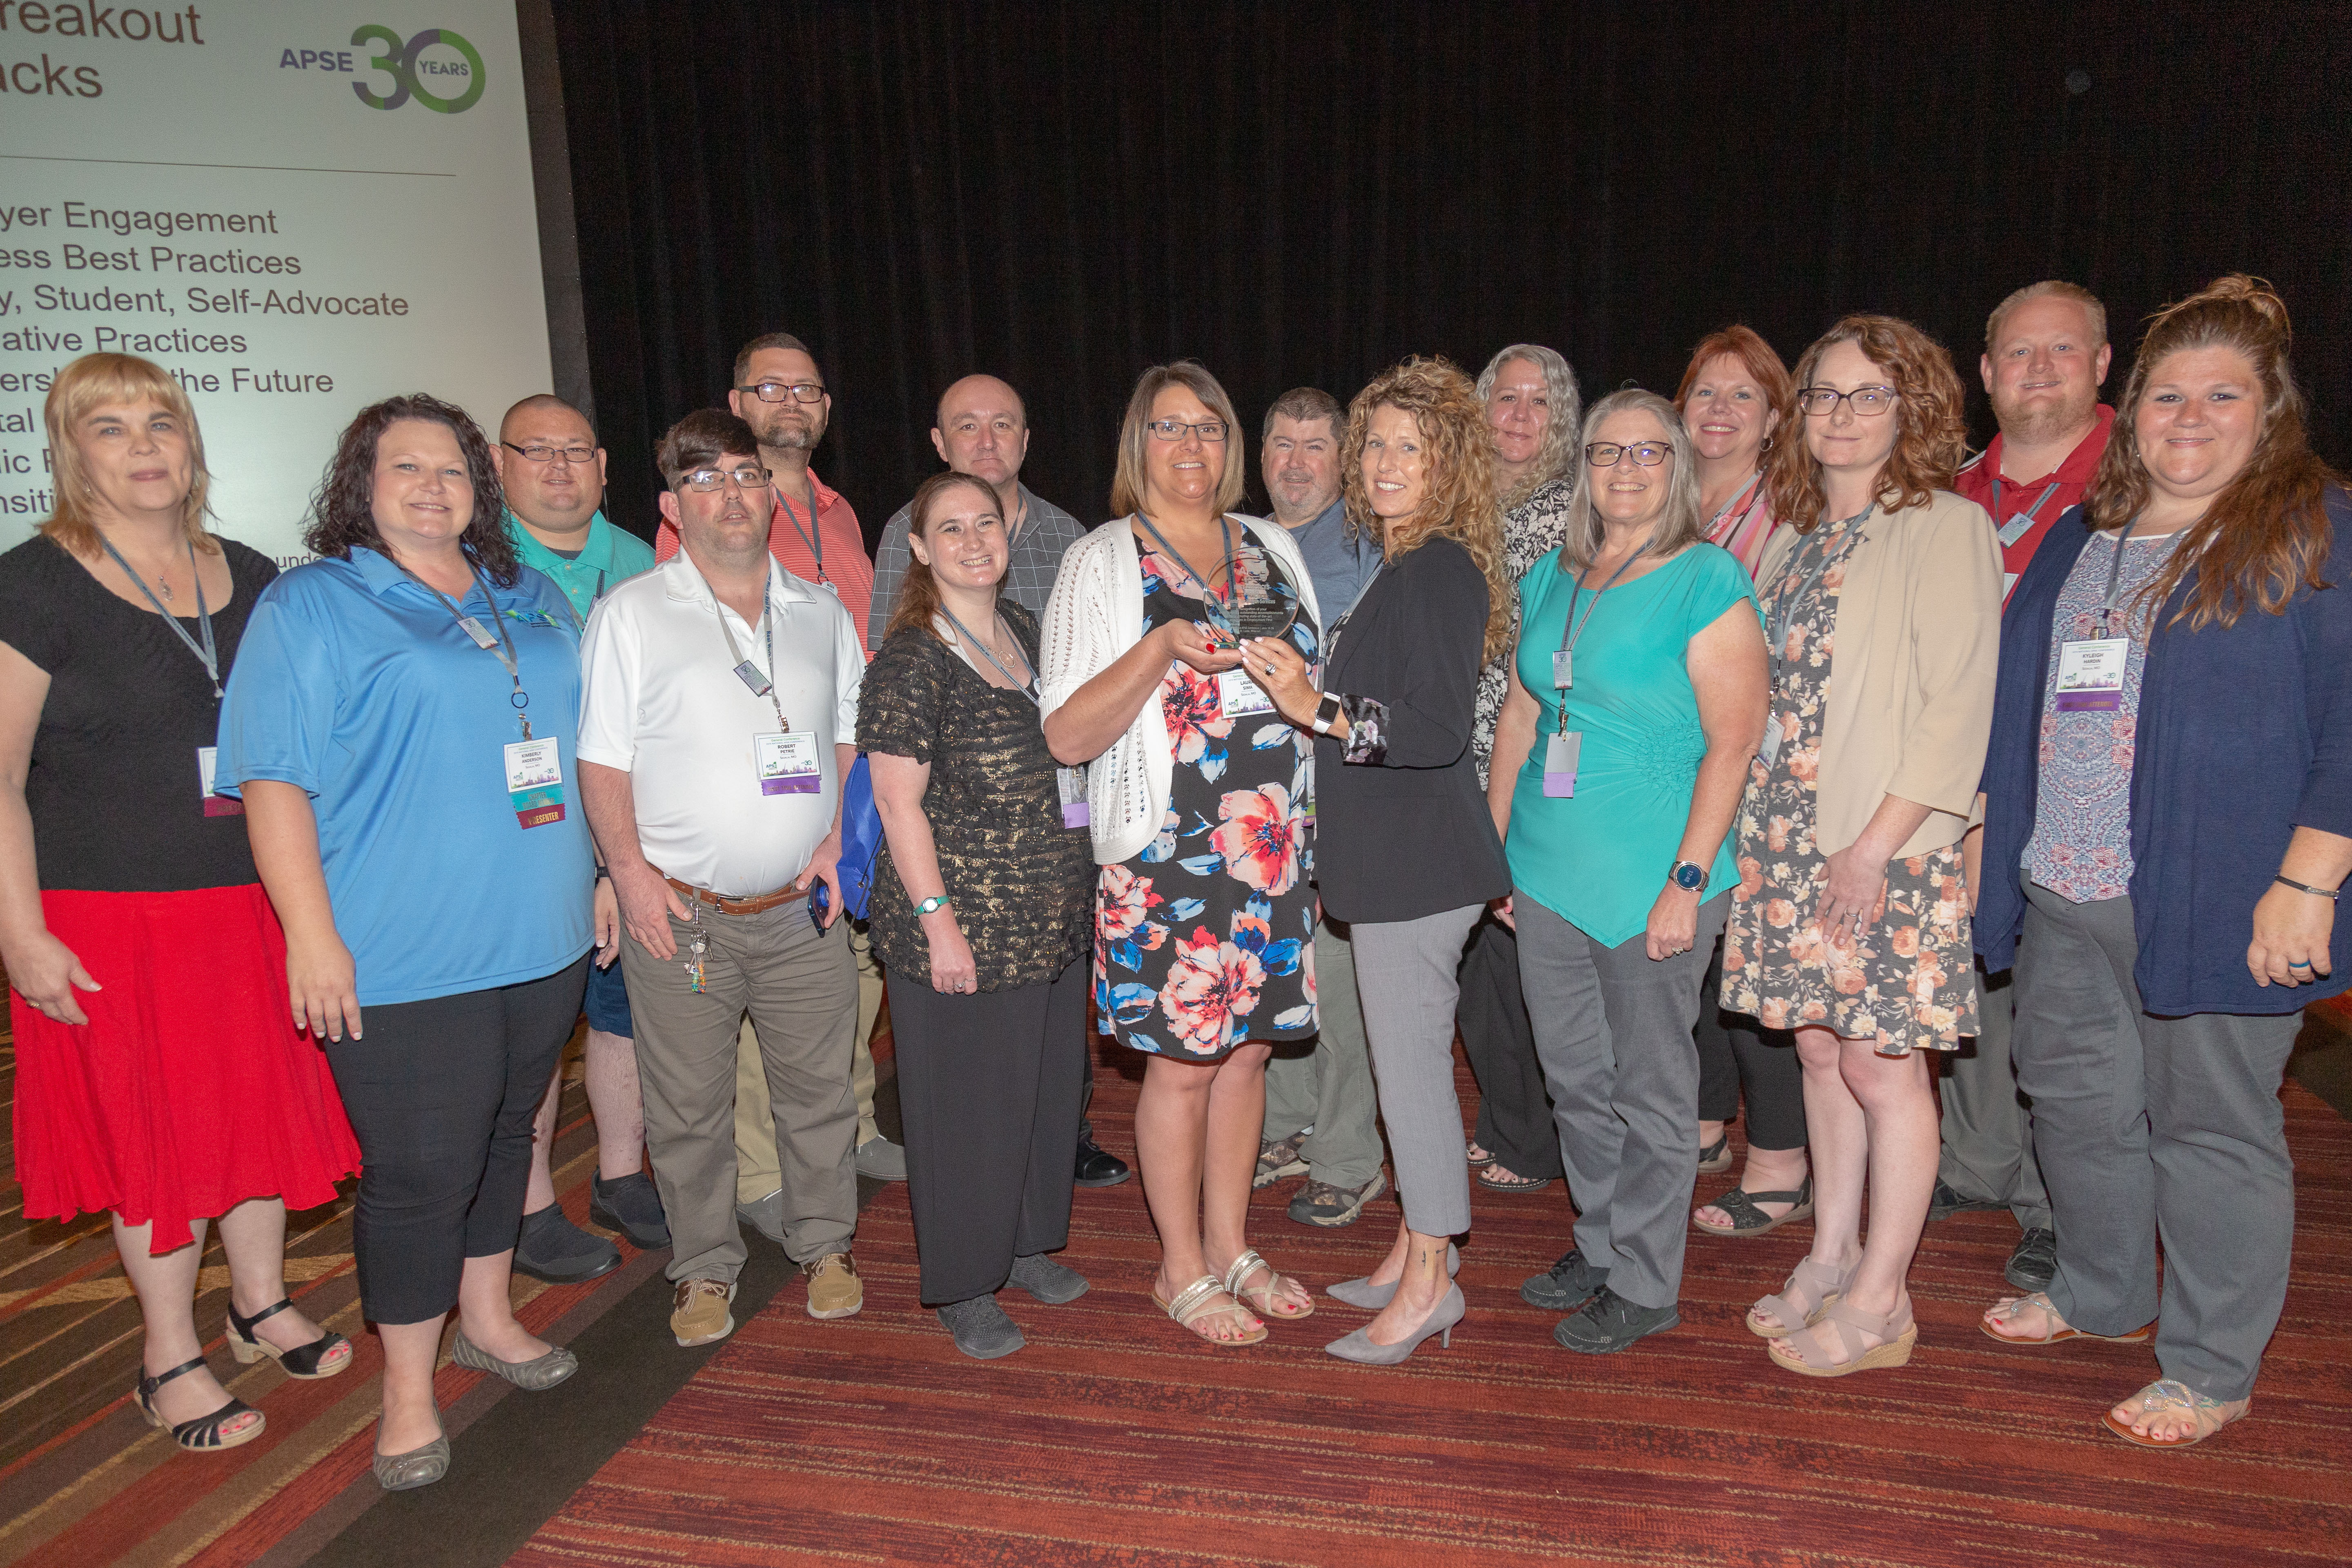 Center for Human Services of Sedalia, MO – Best Practice Award